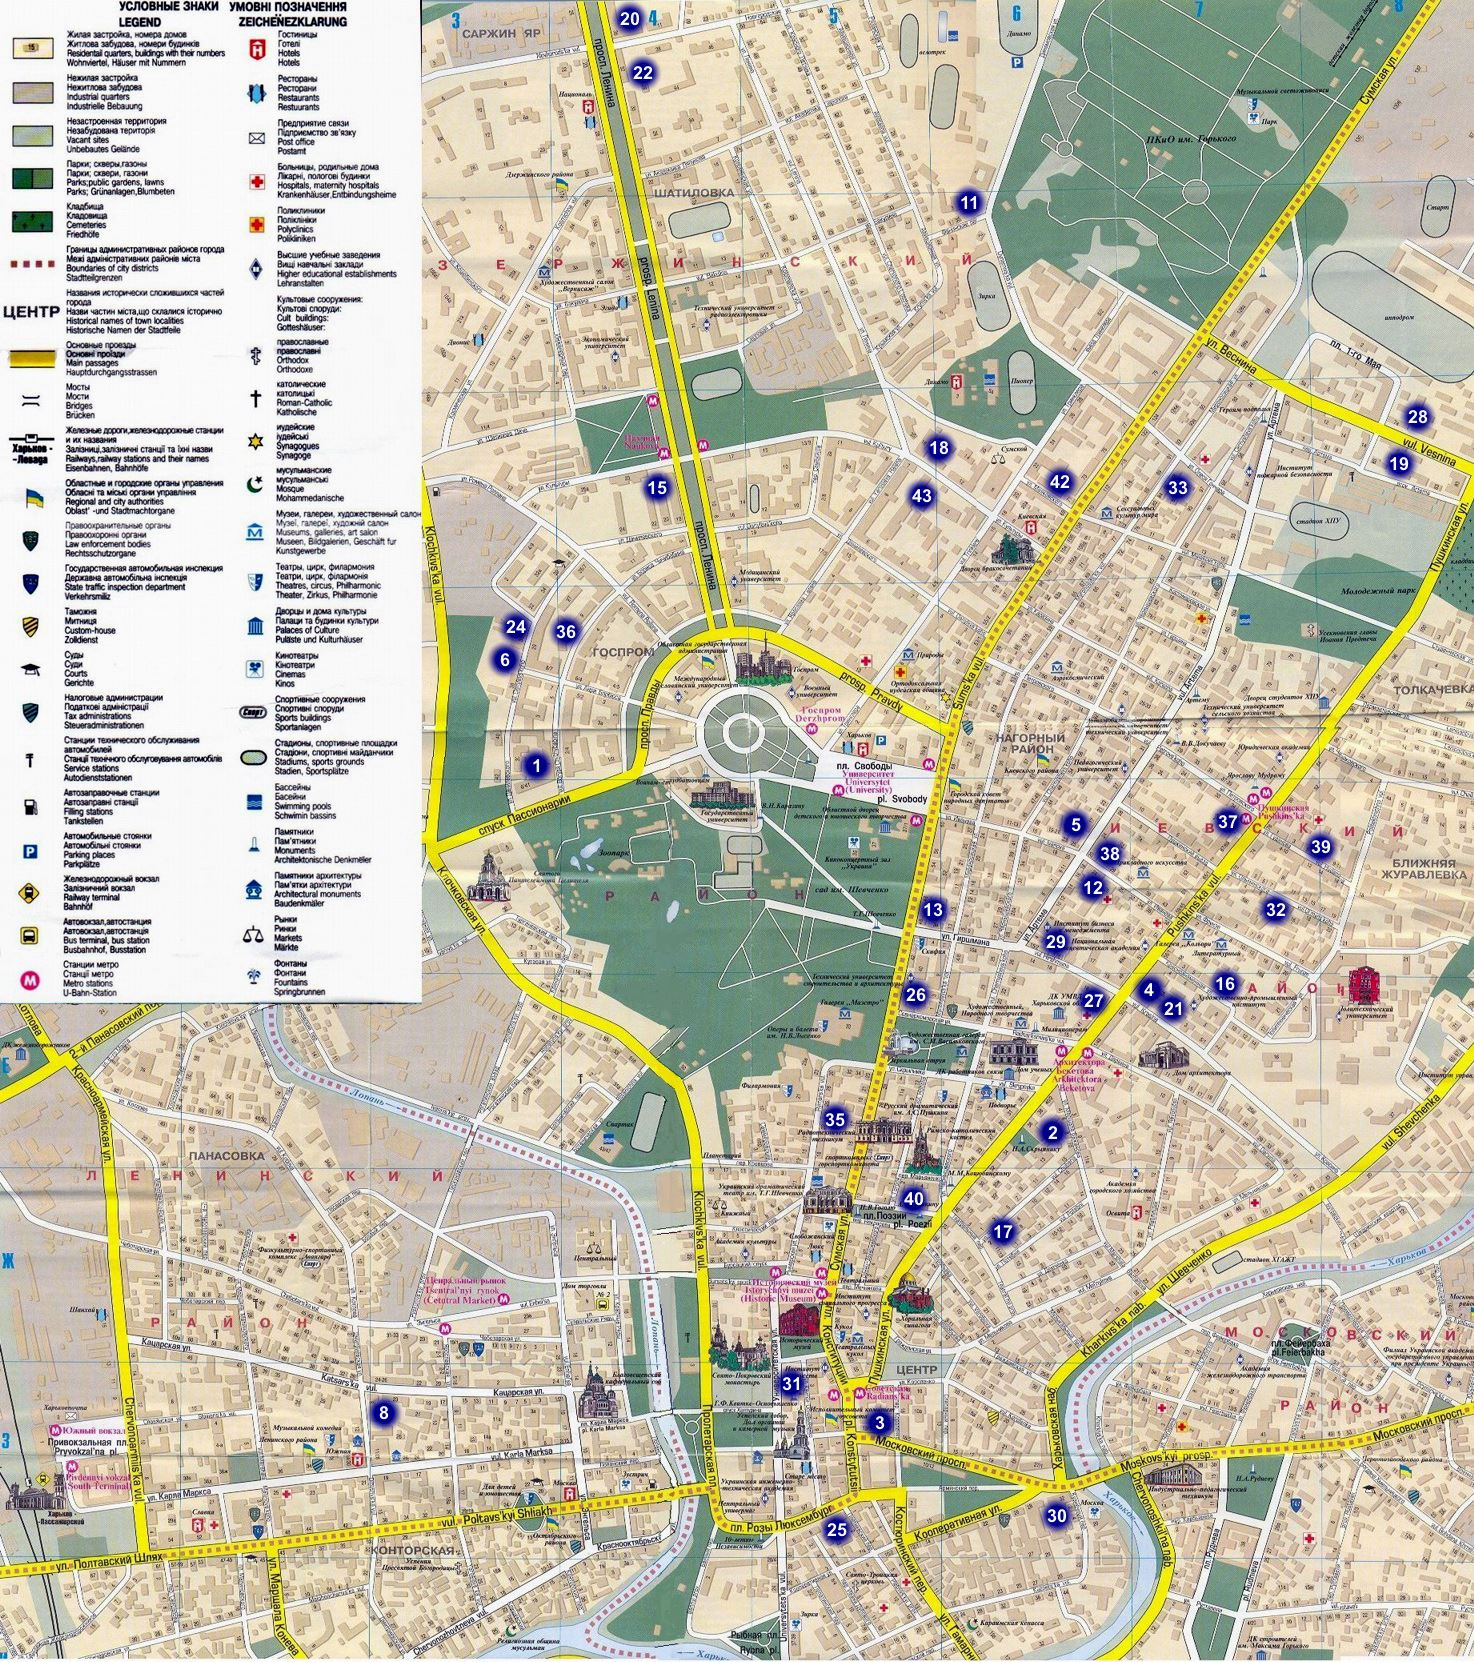 Large Kharkov Maps for Free Download and Print | High-Resolution and on poltava map, detailed city street map, donbass ukraine map, dnipropetrovsk ukraine map, donetsk map, ato ukraine map, ukraine religion map, kiev map, odessa ukraine map, east ukraine map, belaya tserkov ukraine map, bessarabia ukraine map, crimea region ukraine map, ukraine military bases map, minsk map, the lake of ozarks map, vinnytsia ukraine map, kramatorsk ukraine map, kharkiv military map, kharkiv ukraine map,